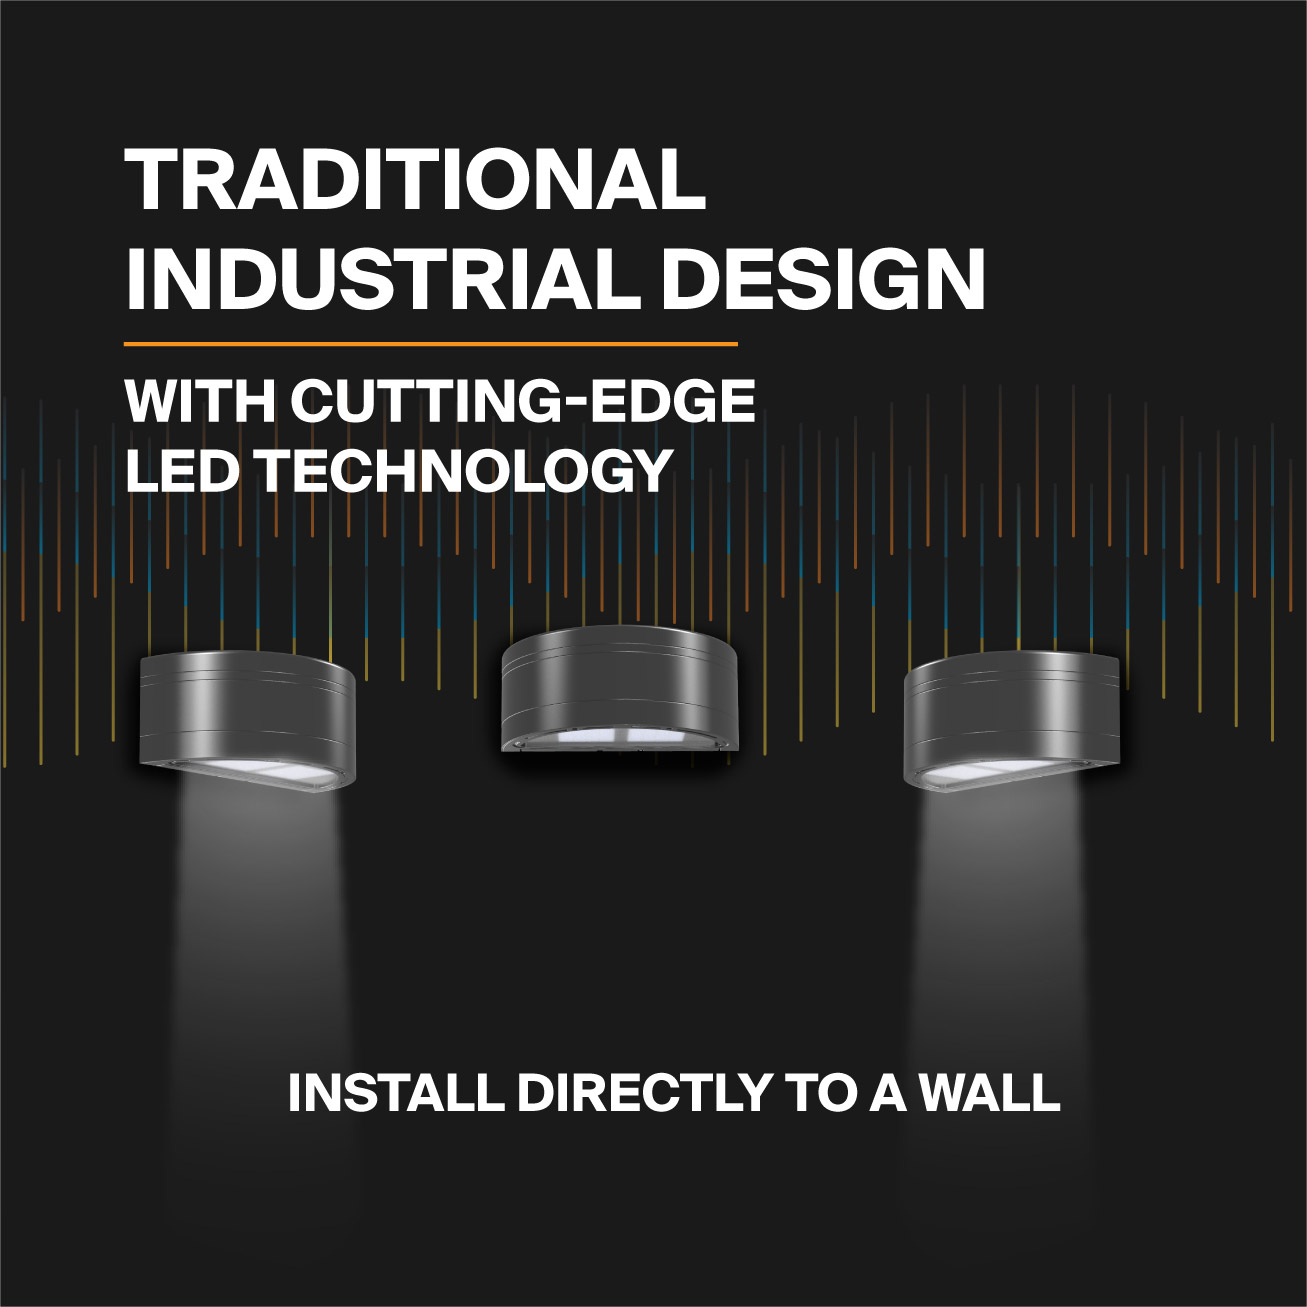 Probrite Architectural LED Wall Pack With Traditional Industrial Design